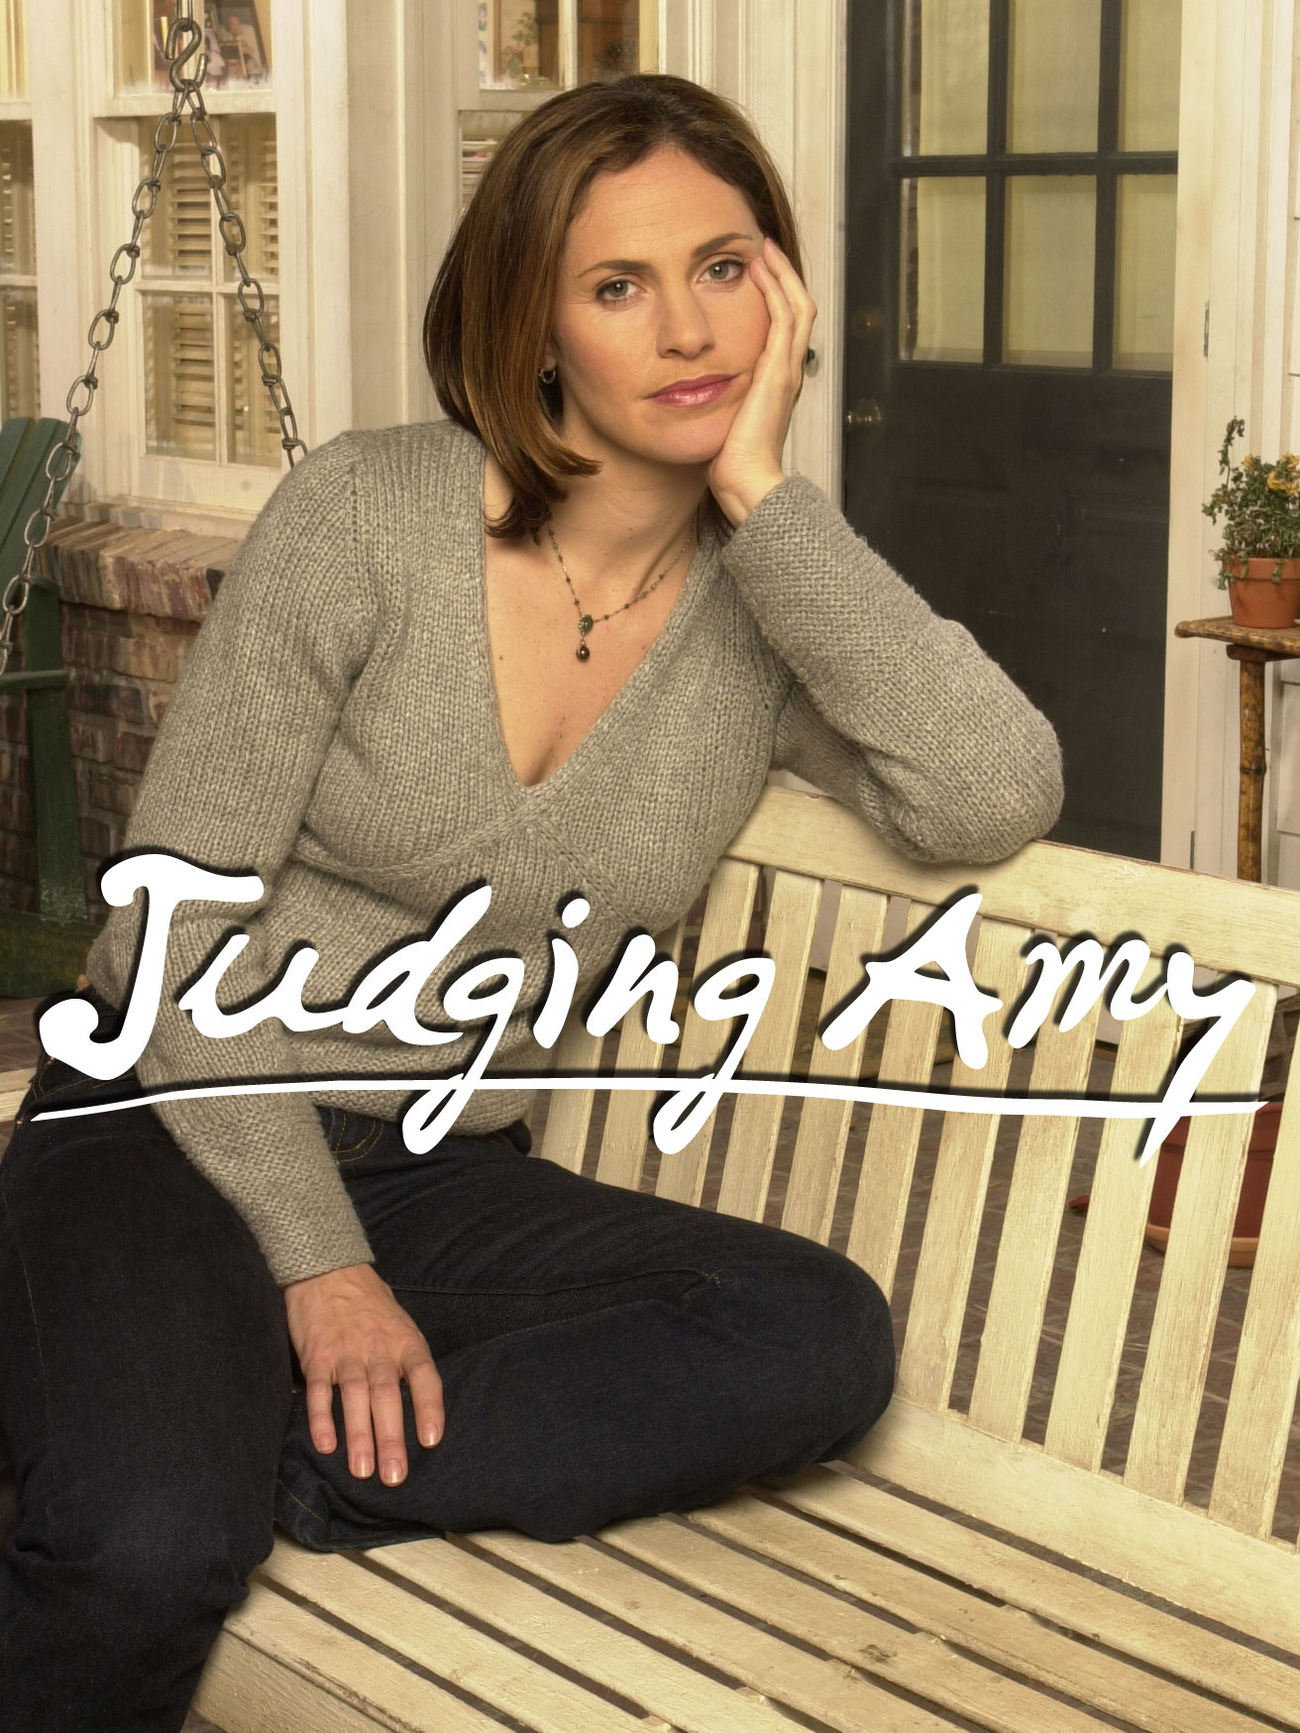 Judging Amy: Season 5